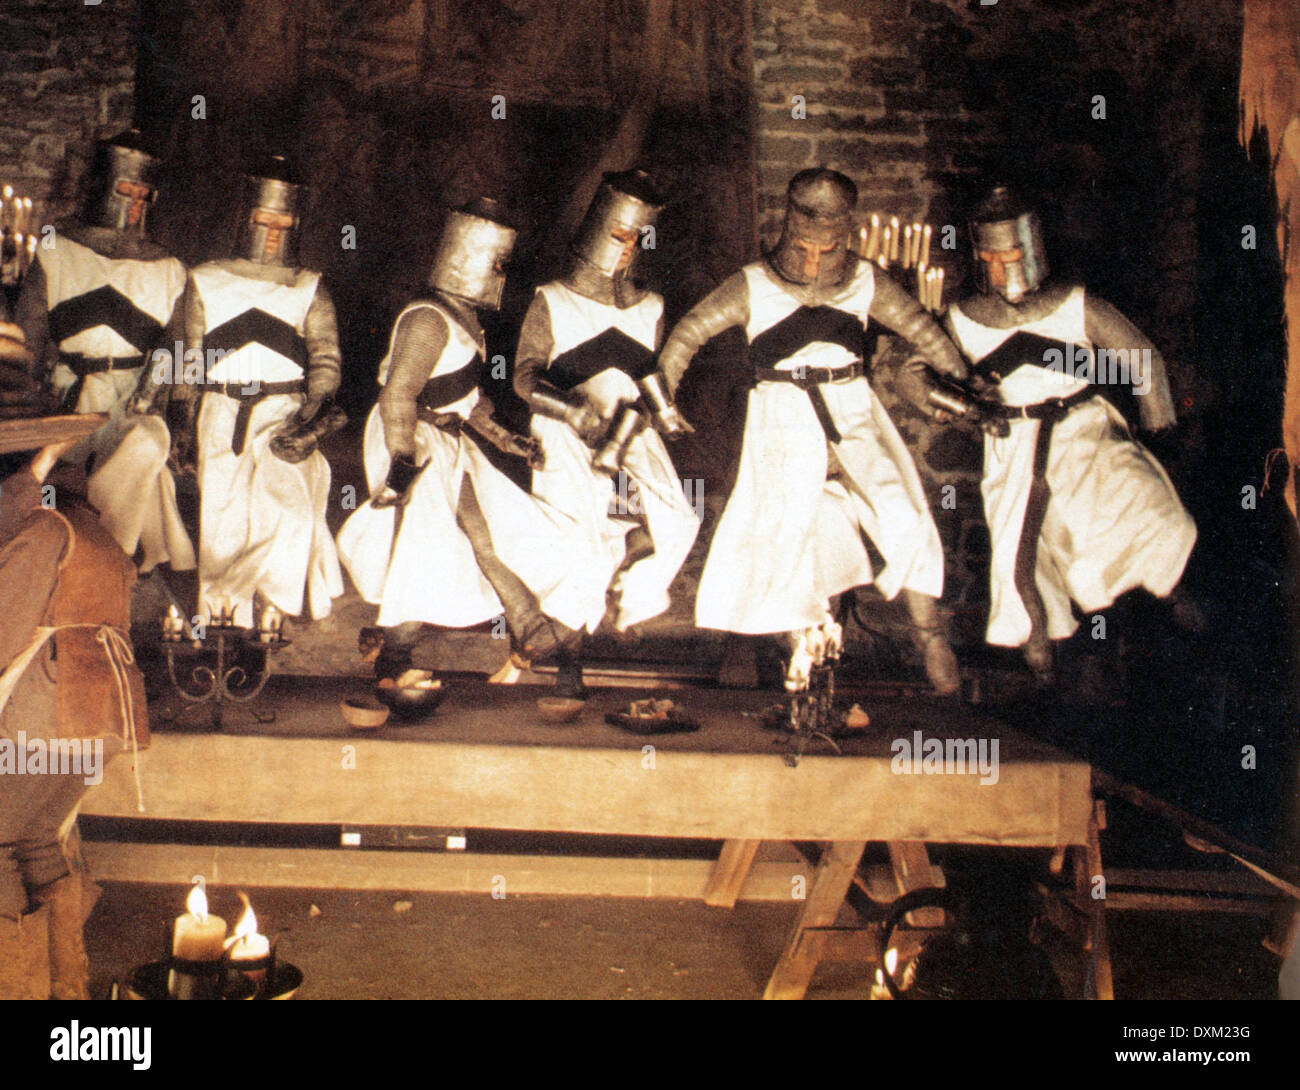 Monty Python The Royal Philharmonic Orchestra Goes To The Bathroom: Holy Grail Stock Photos & Holy Grail Stock Images